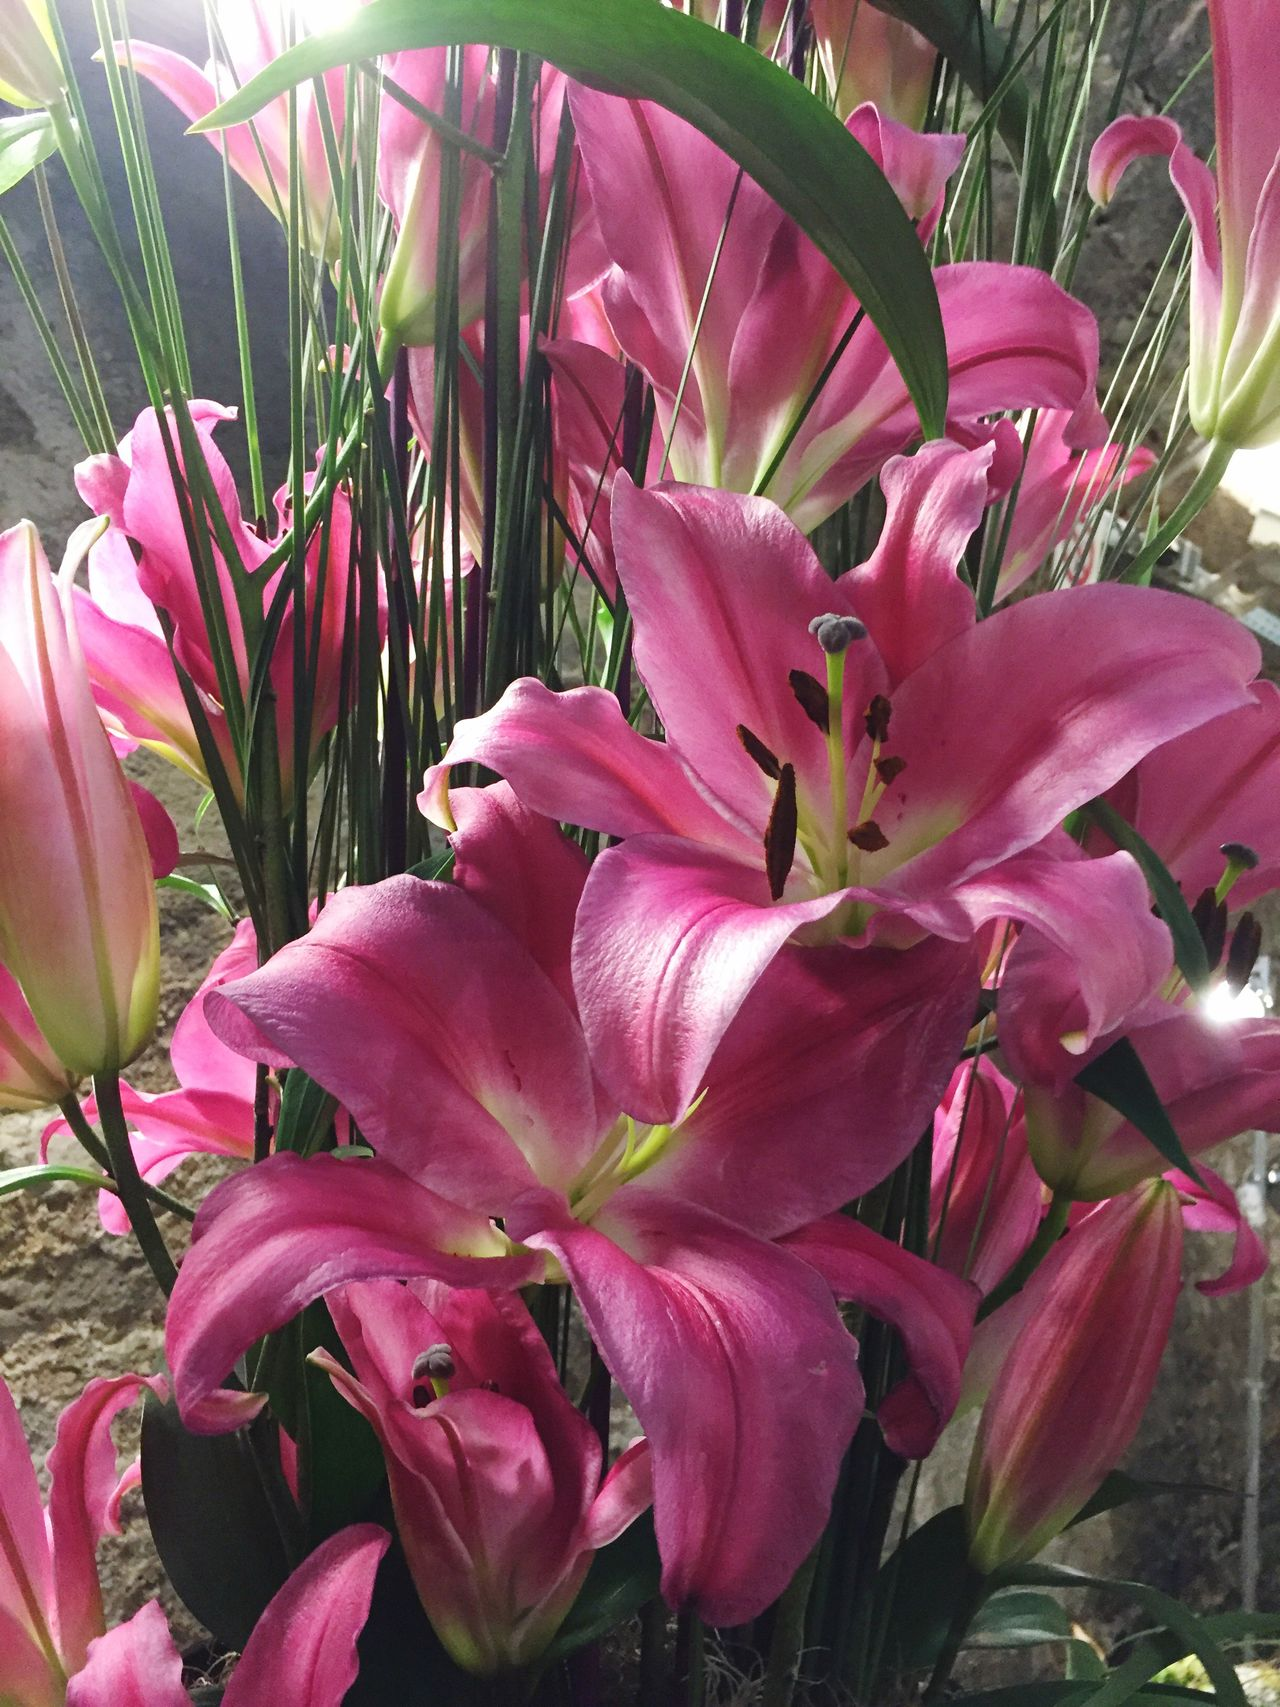 Flower decoration with pink lilies Flower Fragility Growth Beauty In Nature Petal Freshness Pink Color Nature Plant Flower Head Close-up No People Day Outdoors Day Lily